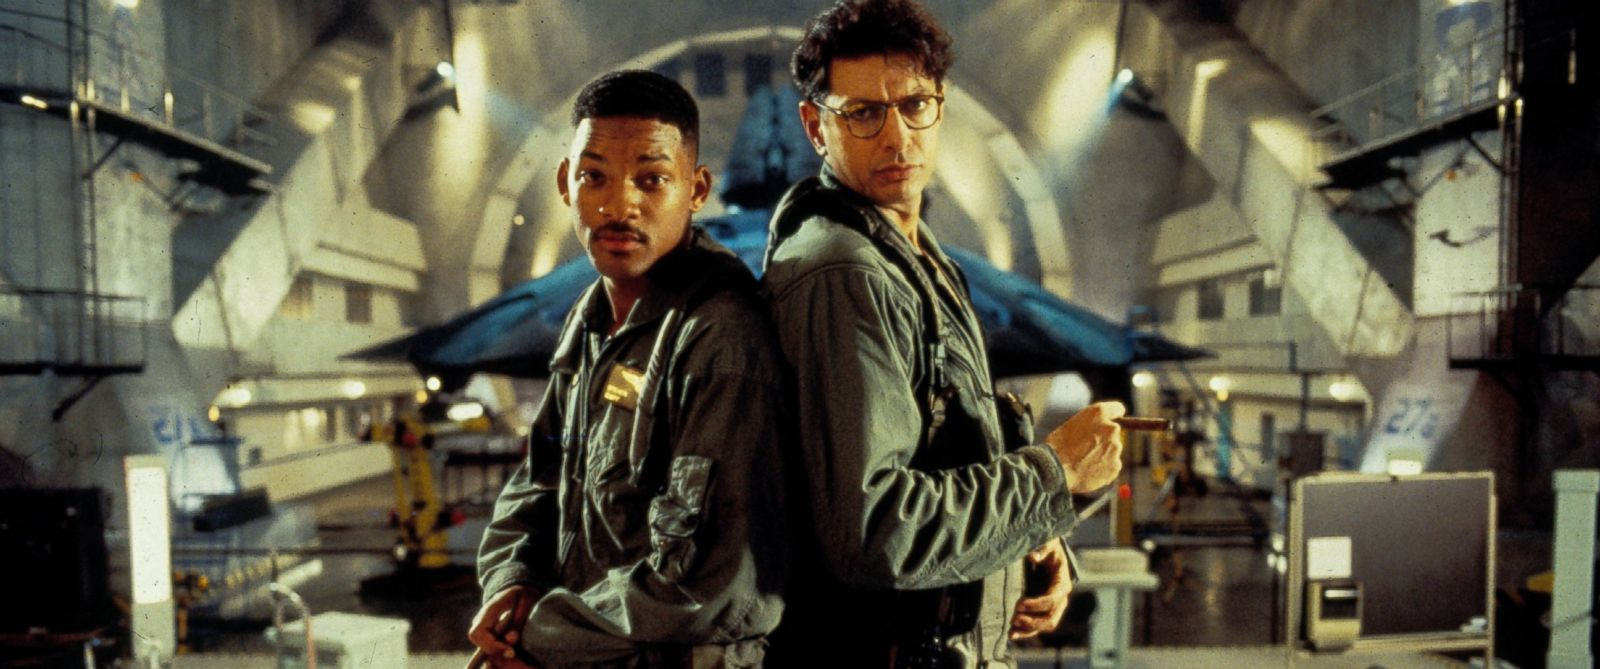 rex_independence_day_film_still_jc_150623_12x5_1600